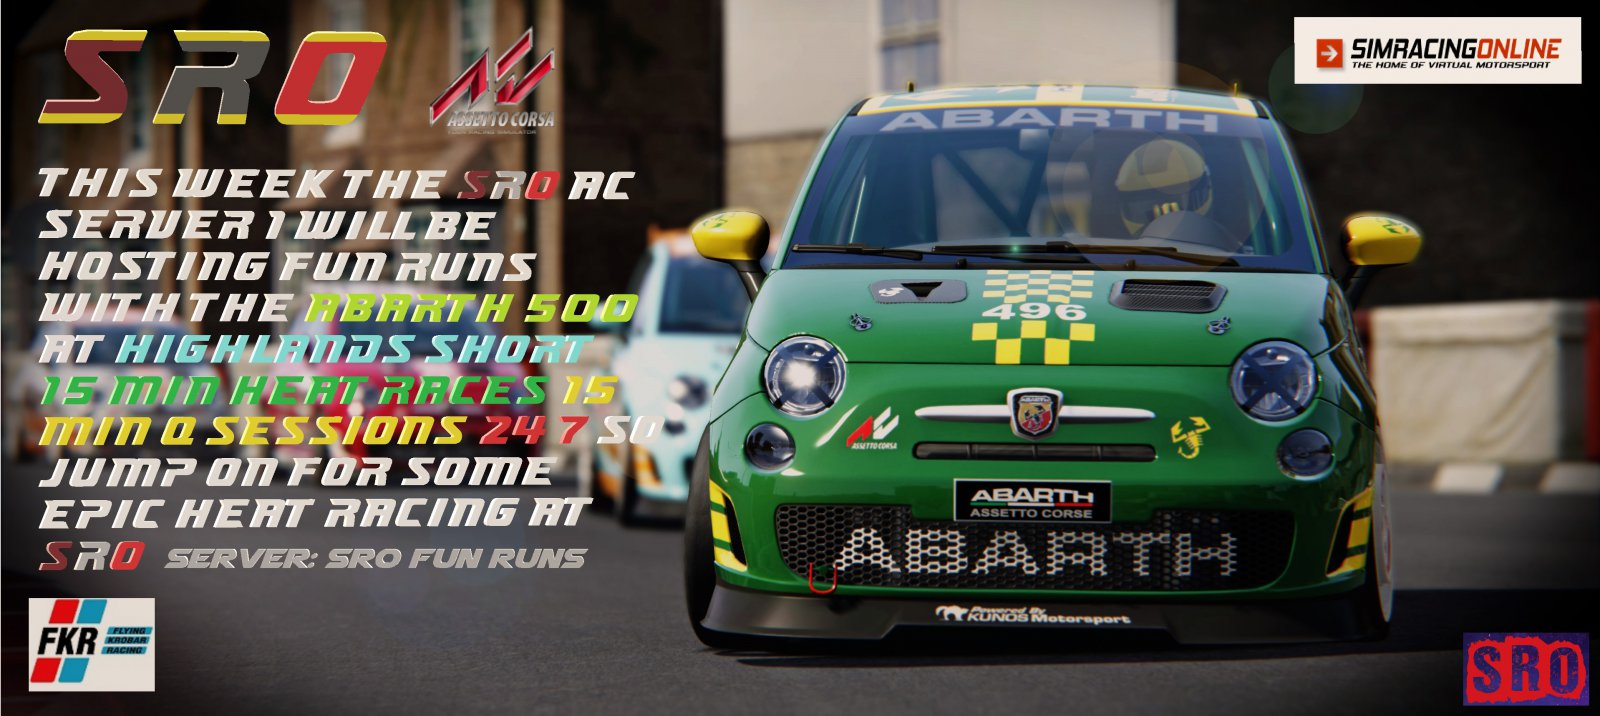 Screenshot_ks_abarth500_assetto_corse_ks_highlands_19-8-118-19-32-14.jpg